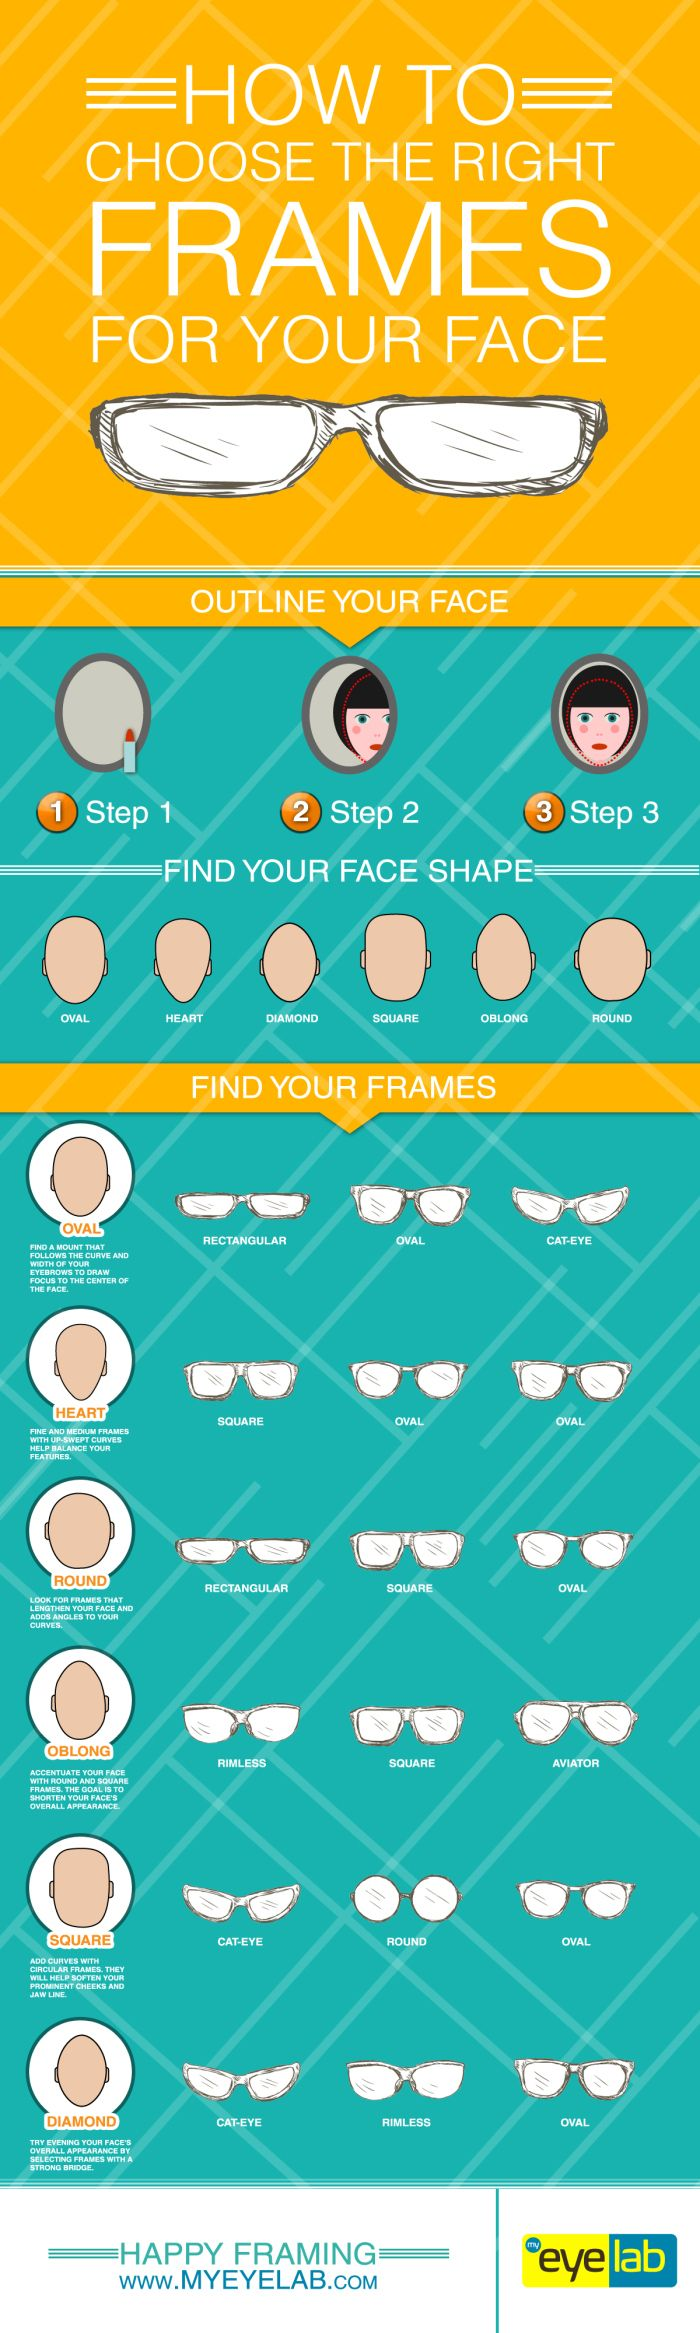 What a great resource for those of us who wear glasses! myeyelab.com